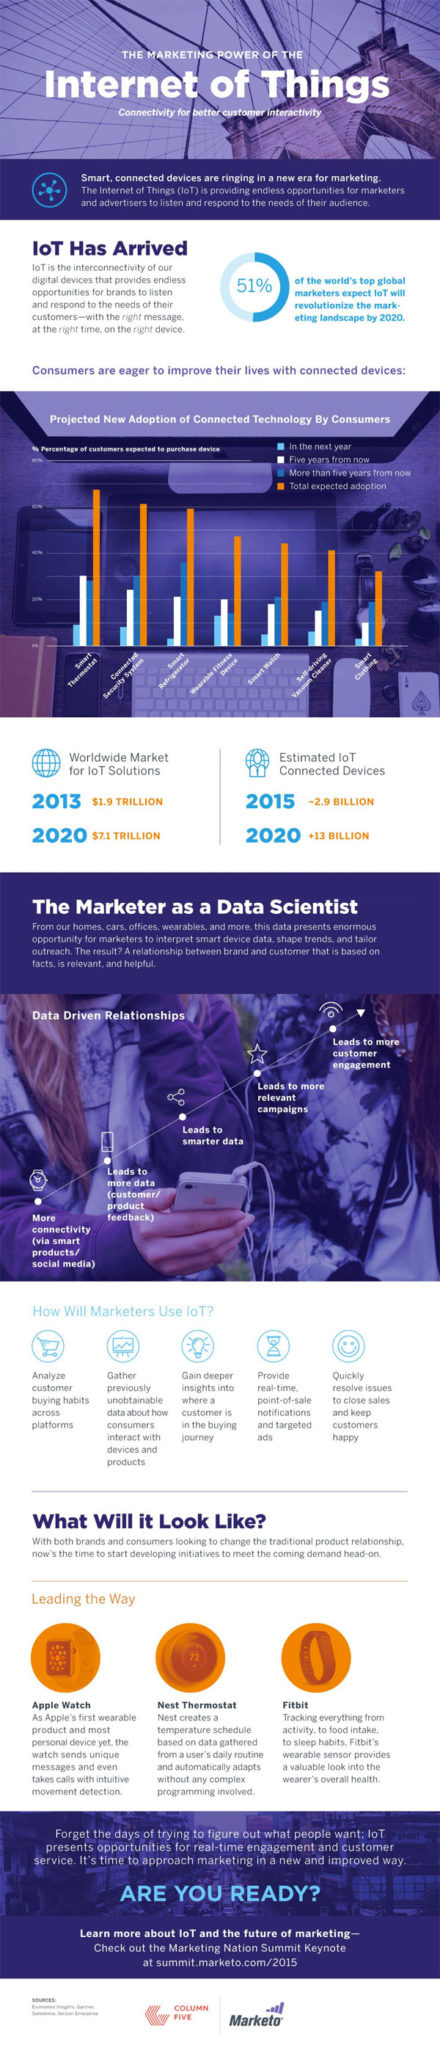 the-marketing-power-of-internet-of-things